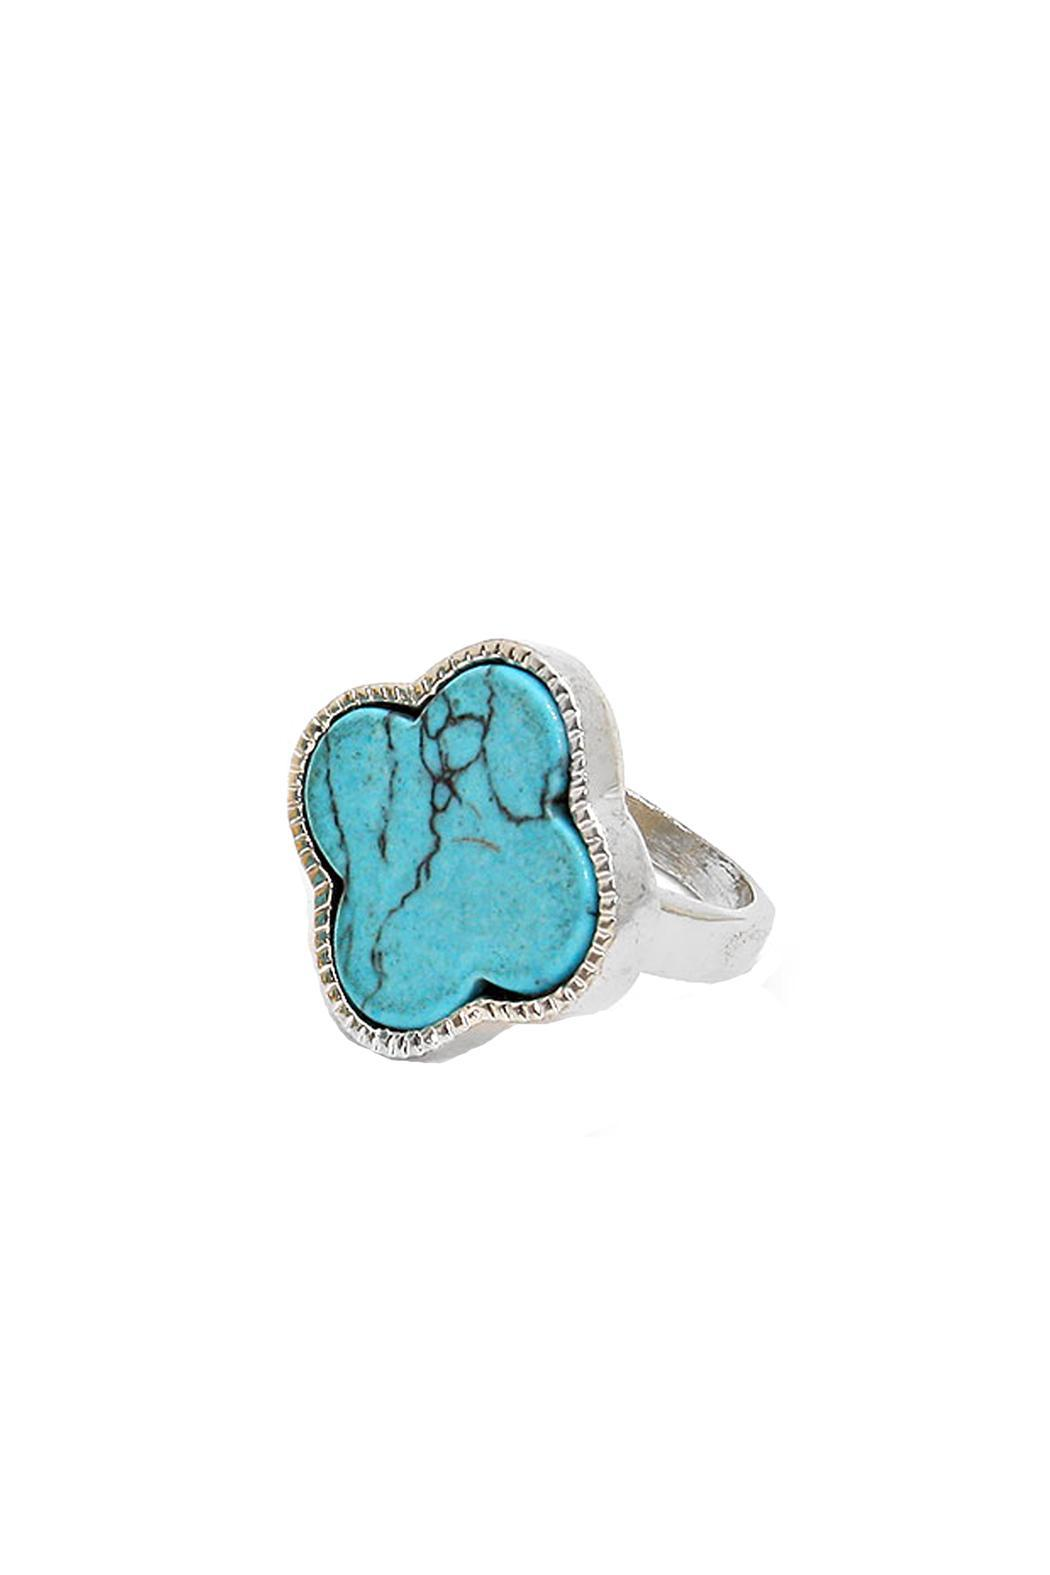 Wild Lilies Jewelry  Turquoise Clover Ring - Main Image